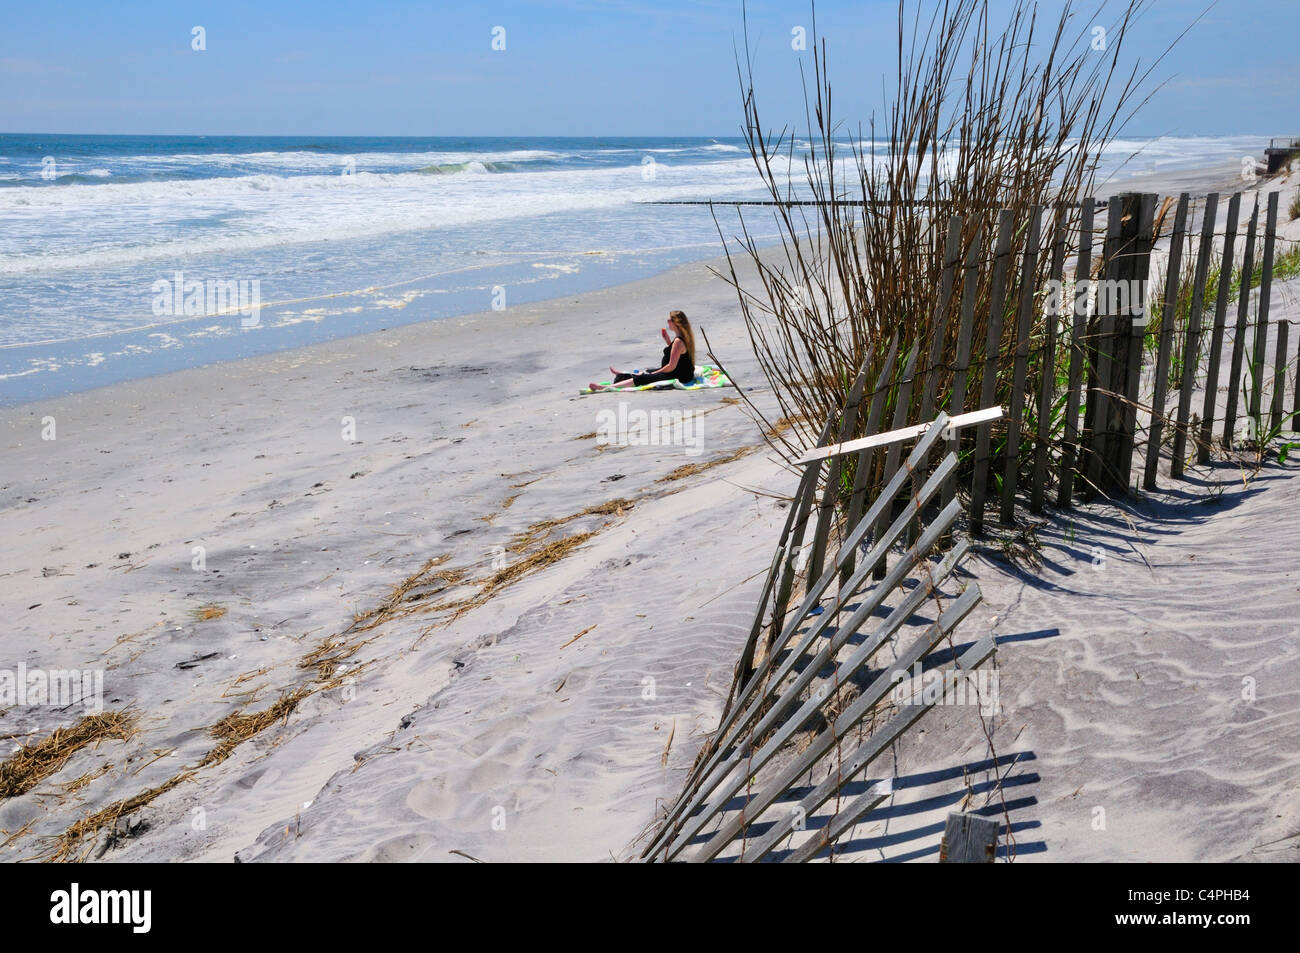 Woman sitting on the beach at Brigantine Beach, New Jersey - Stock Image